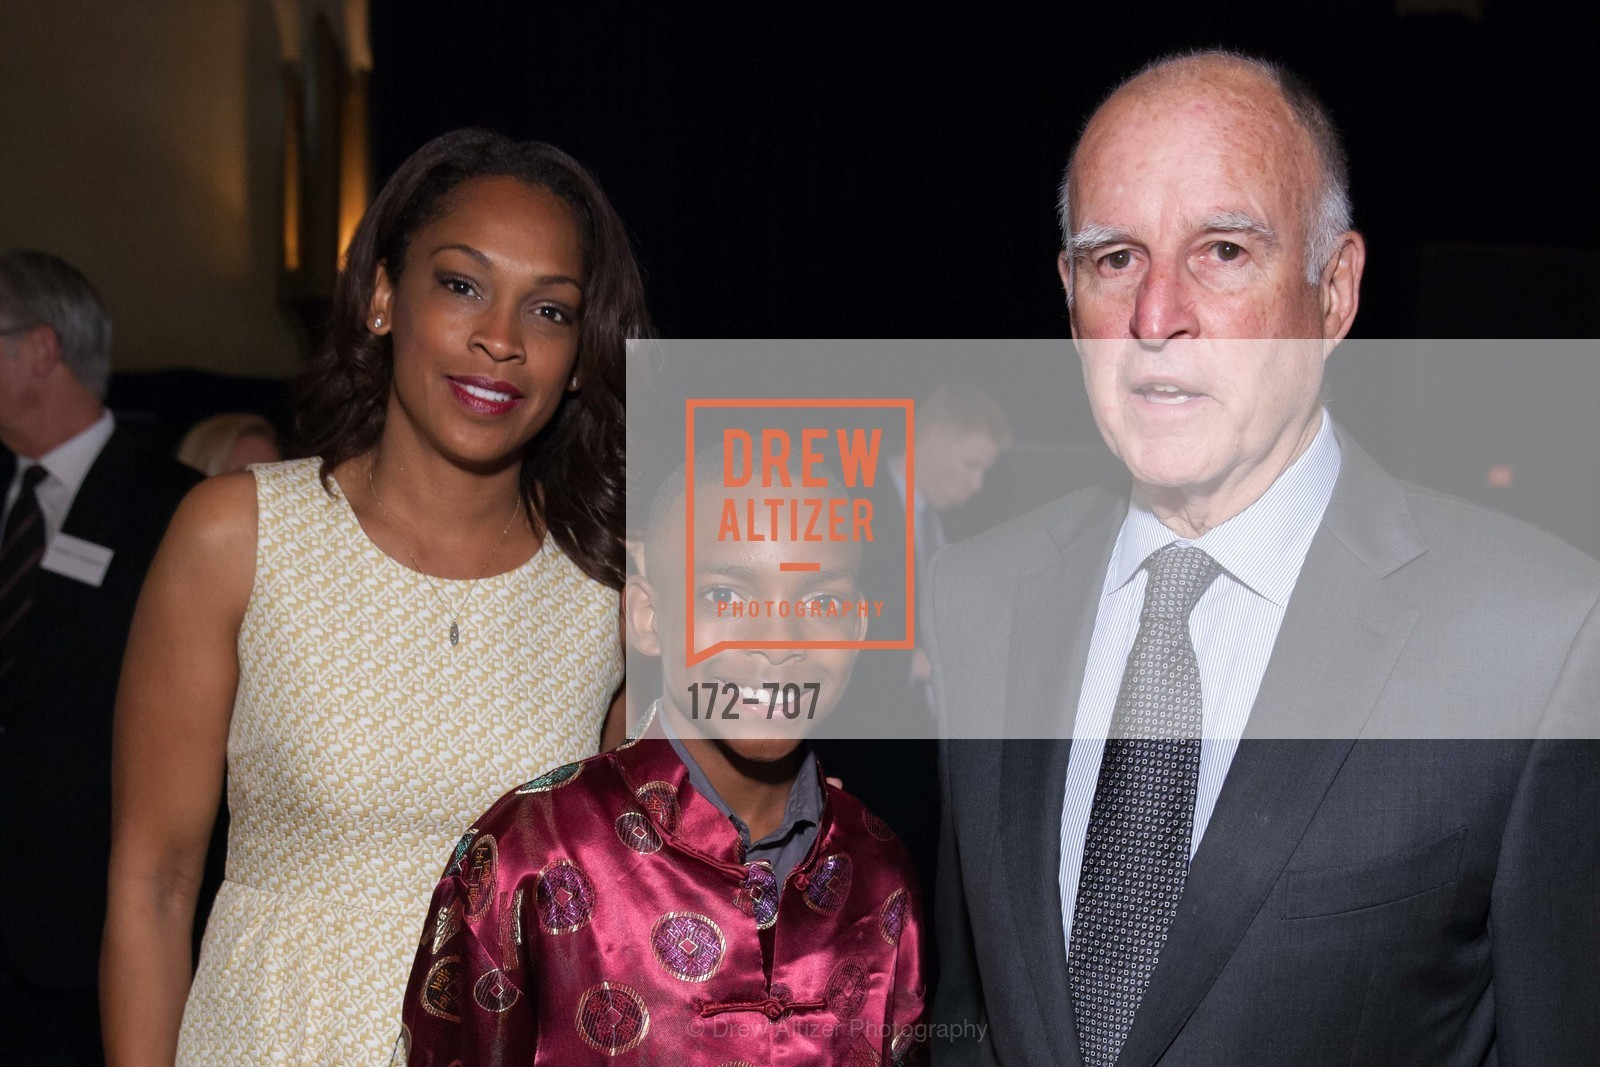 Jena Domingue, Justin Walker, Gov. Jerry Brown, OAKLAND SCHOOL FOR THE ARTS Gala 2015 with Governor Jerry Brown, US, May 7th, 2015,Drew Altizer, Drew Altizer Photography, full-service agency, private events, San Francisco photographer, photographer california